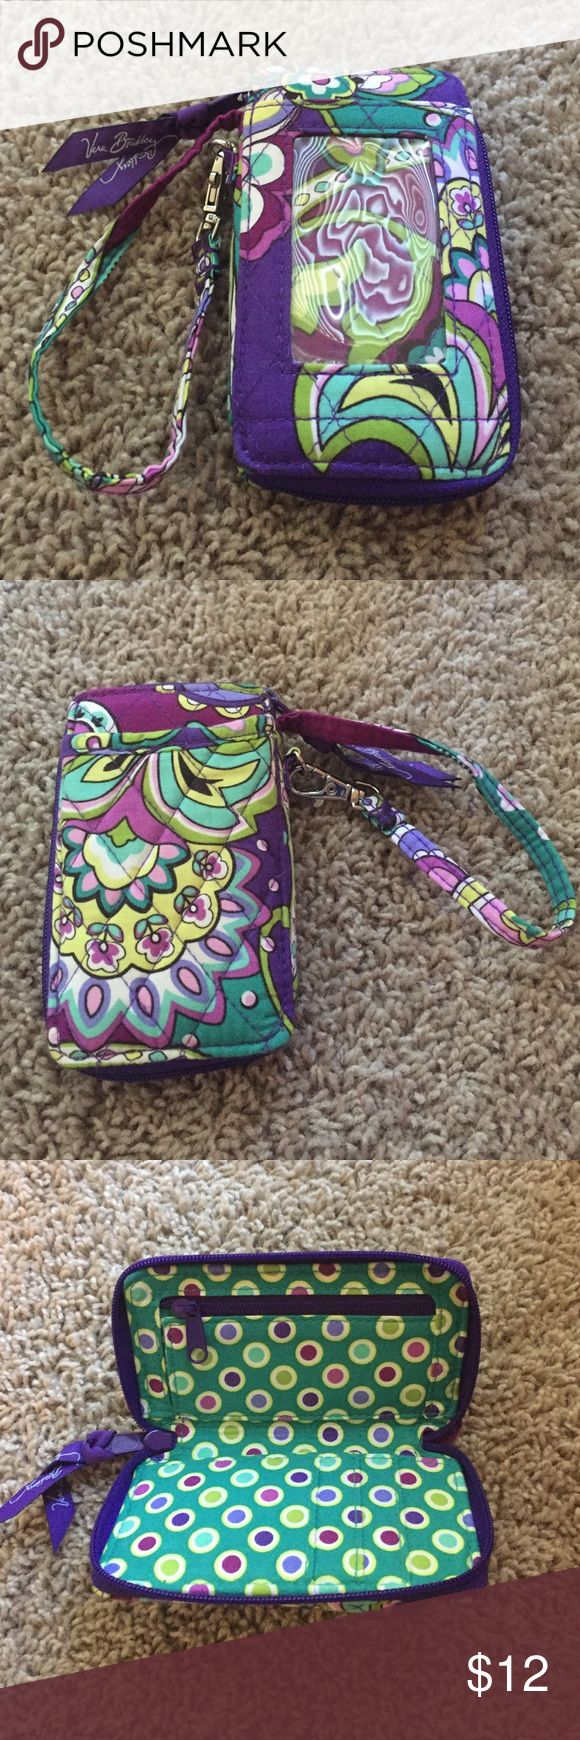 Vera Bradley Purple Wallet Never been used Vera Bradley Wallet! Has a very cute print on the inside and outside! Can be worn as wristlet. Price is negotiable. Vera Bradley Bags Wallets